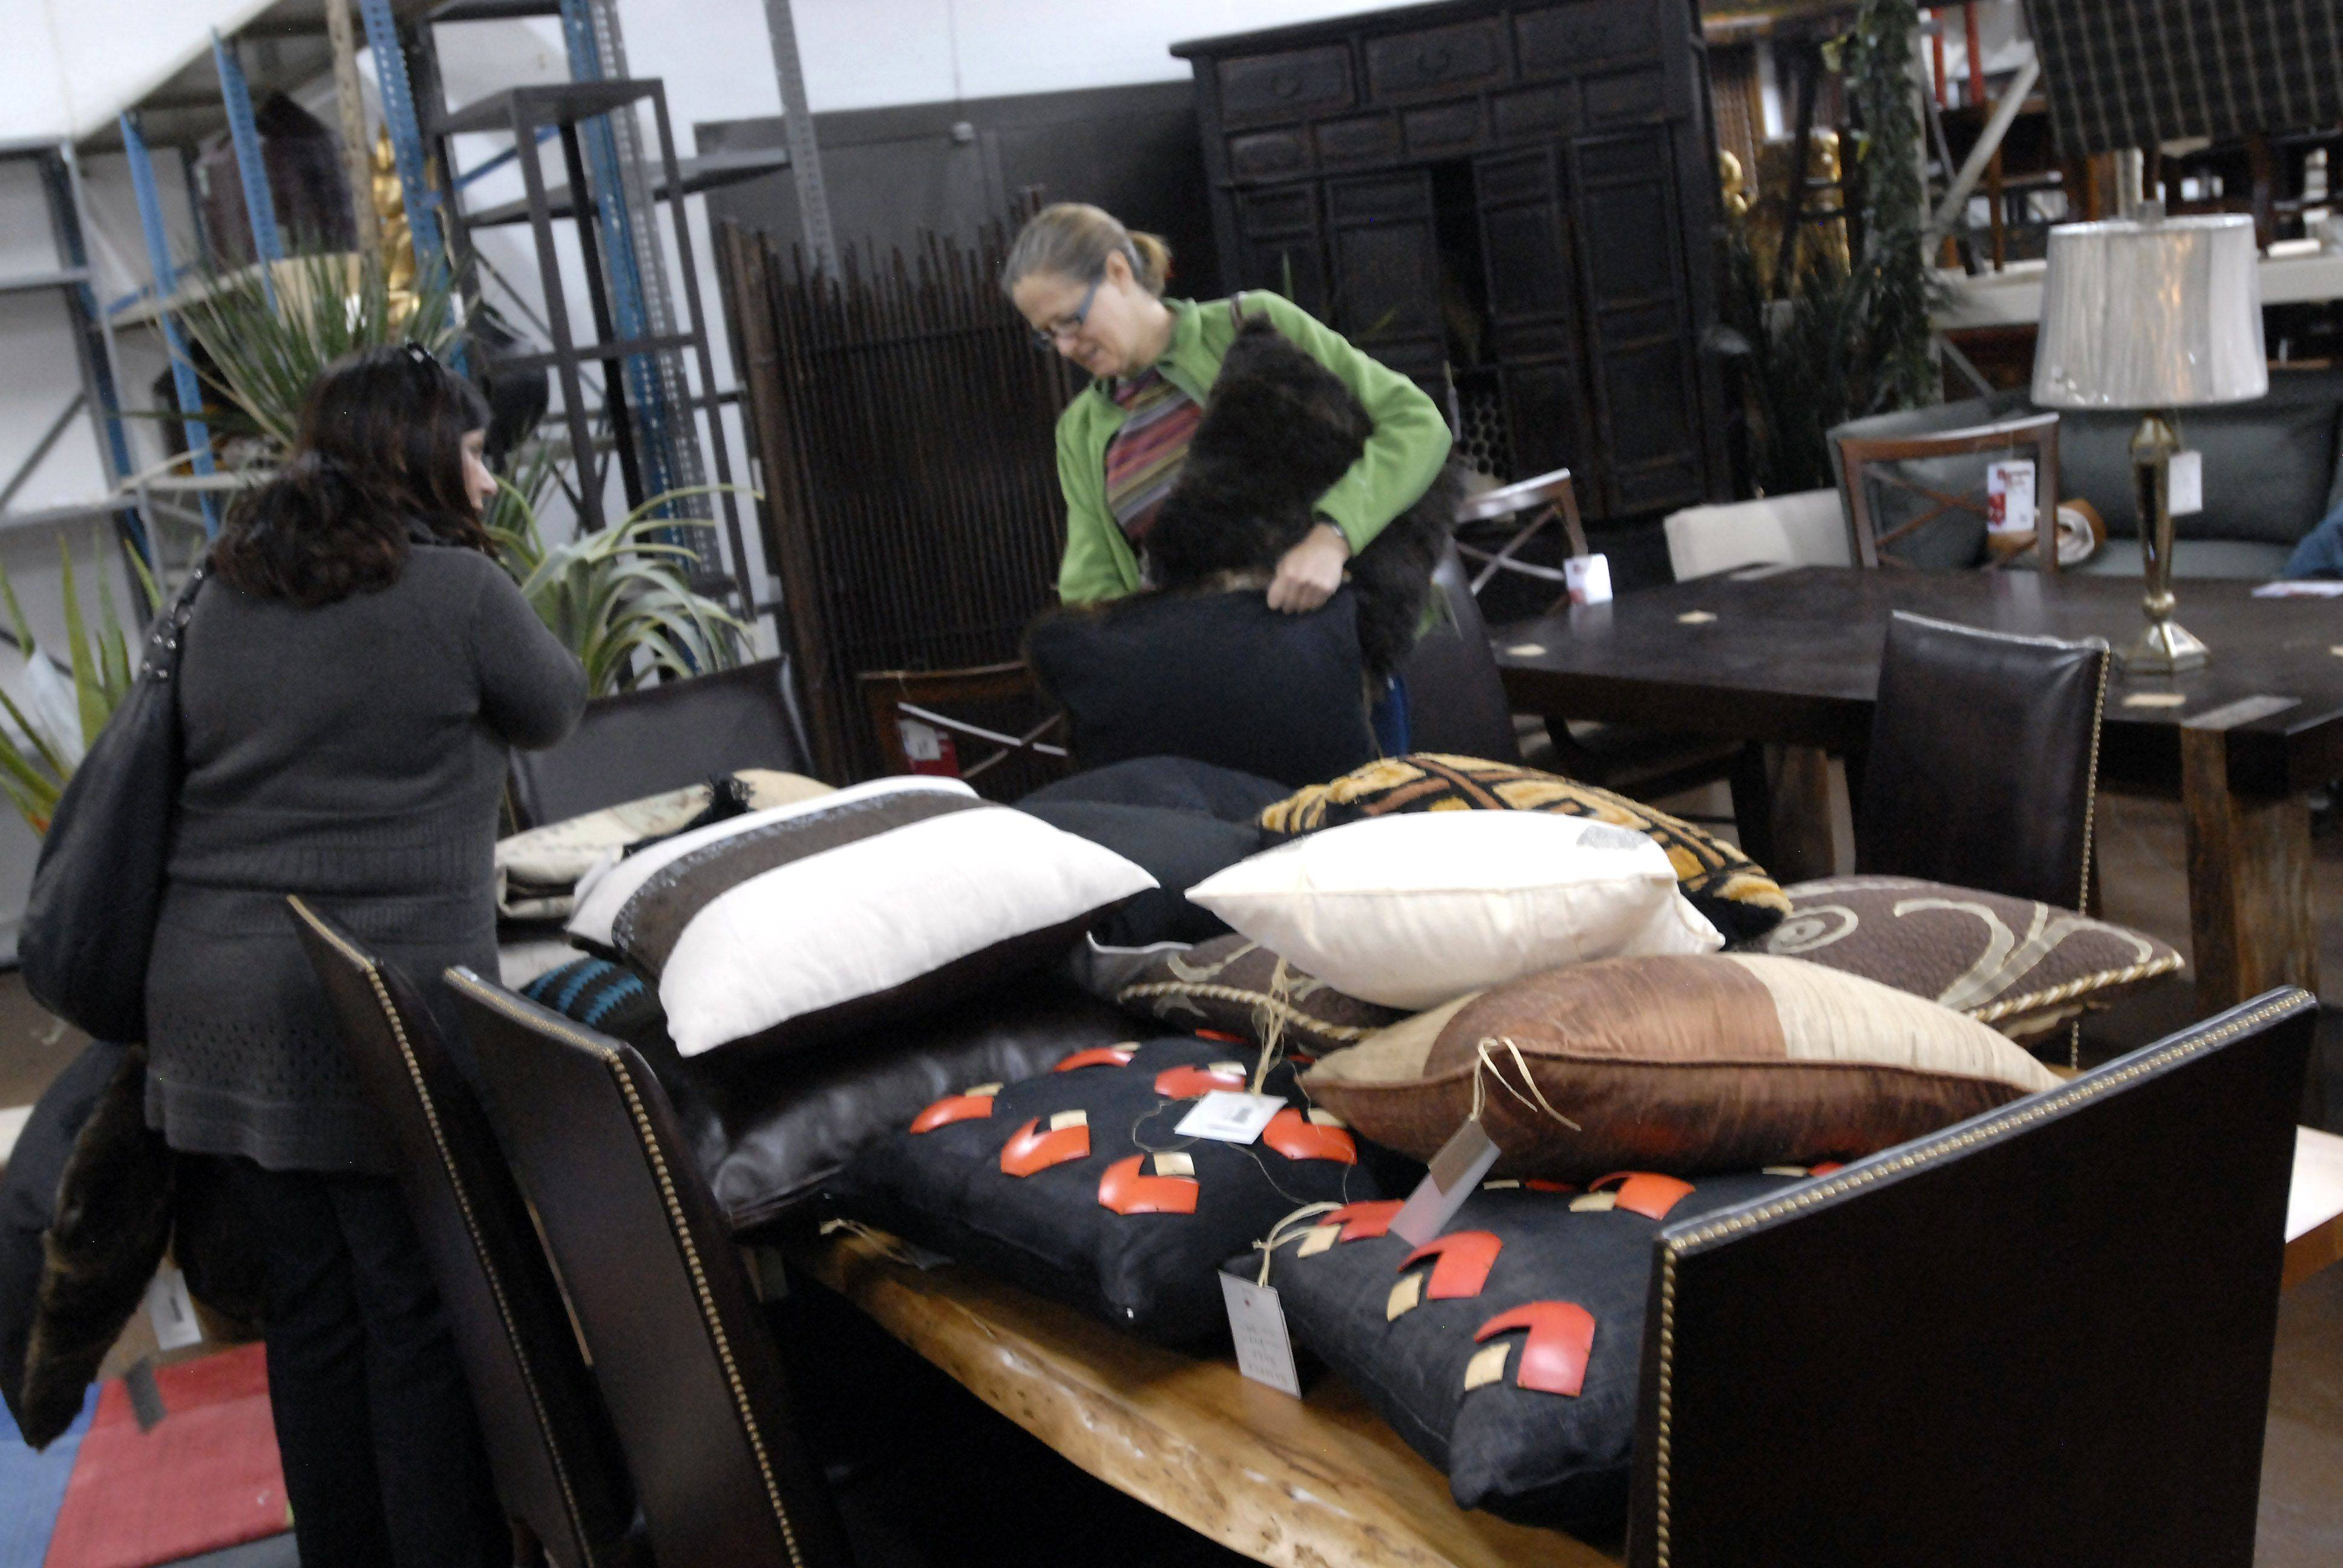 Ana Puga, left, of Carol Stream and Ann Priest of Inverness check out pillows at the sample sale at C.A.I. Design.